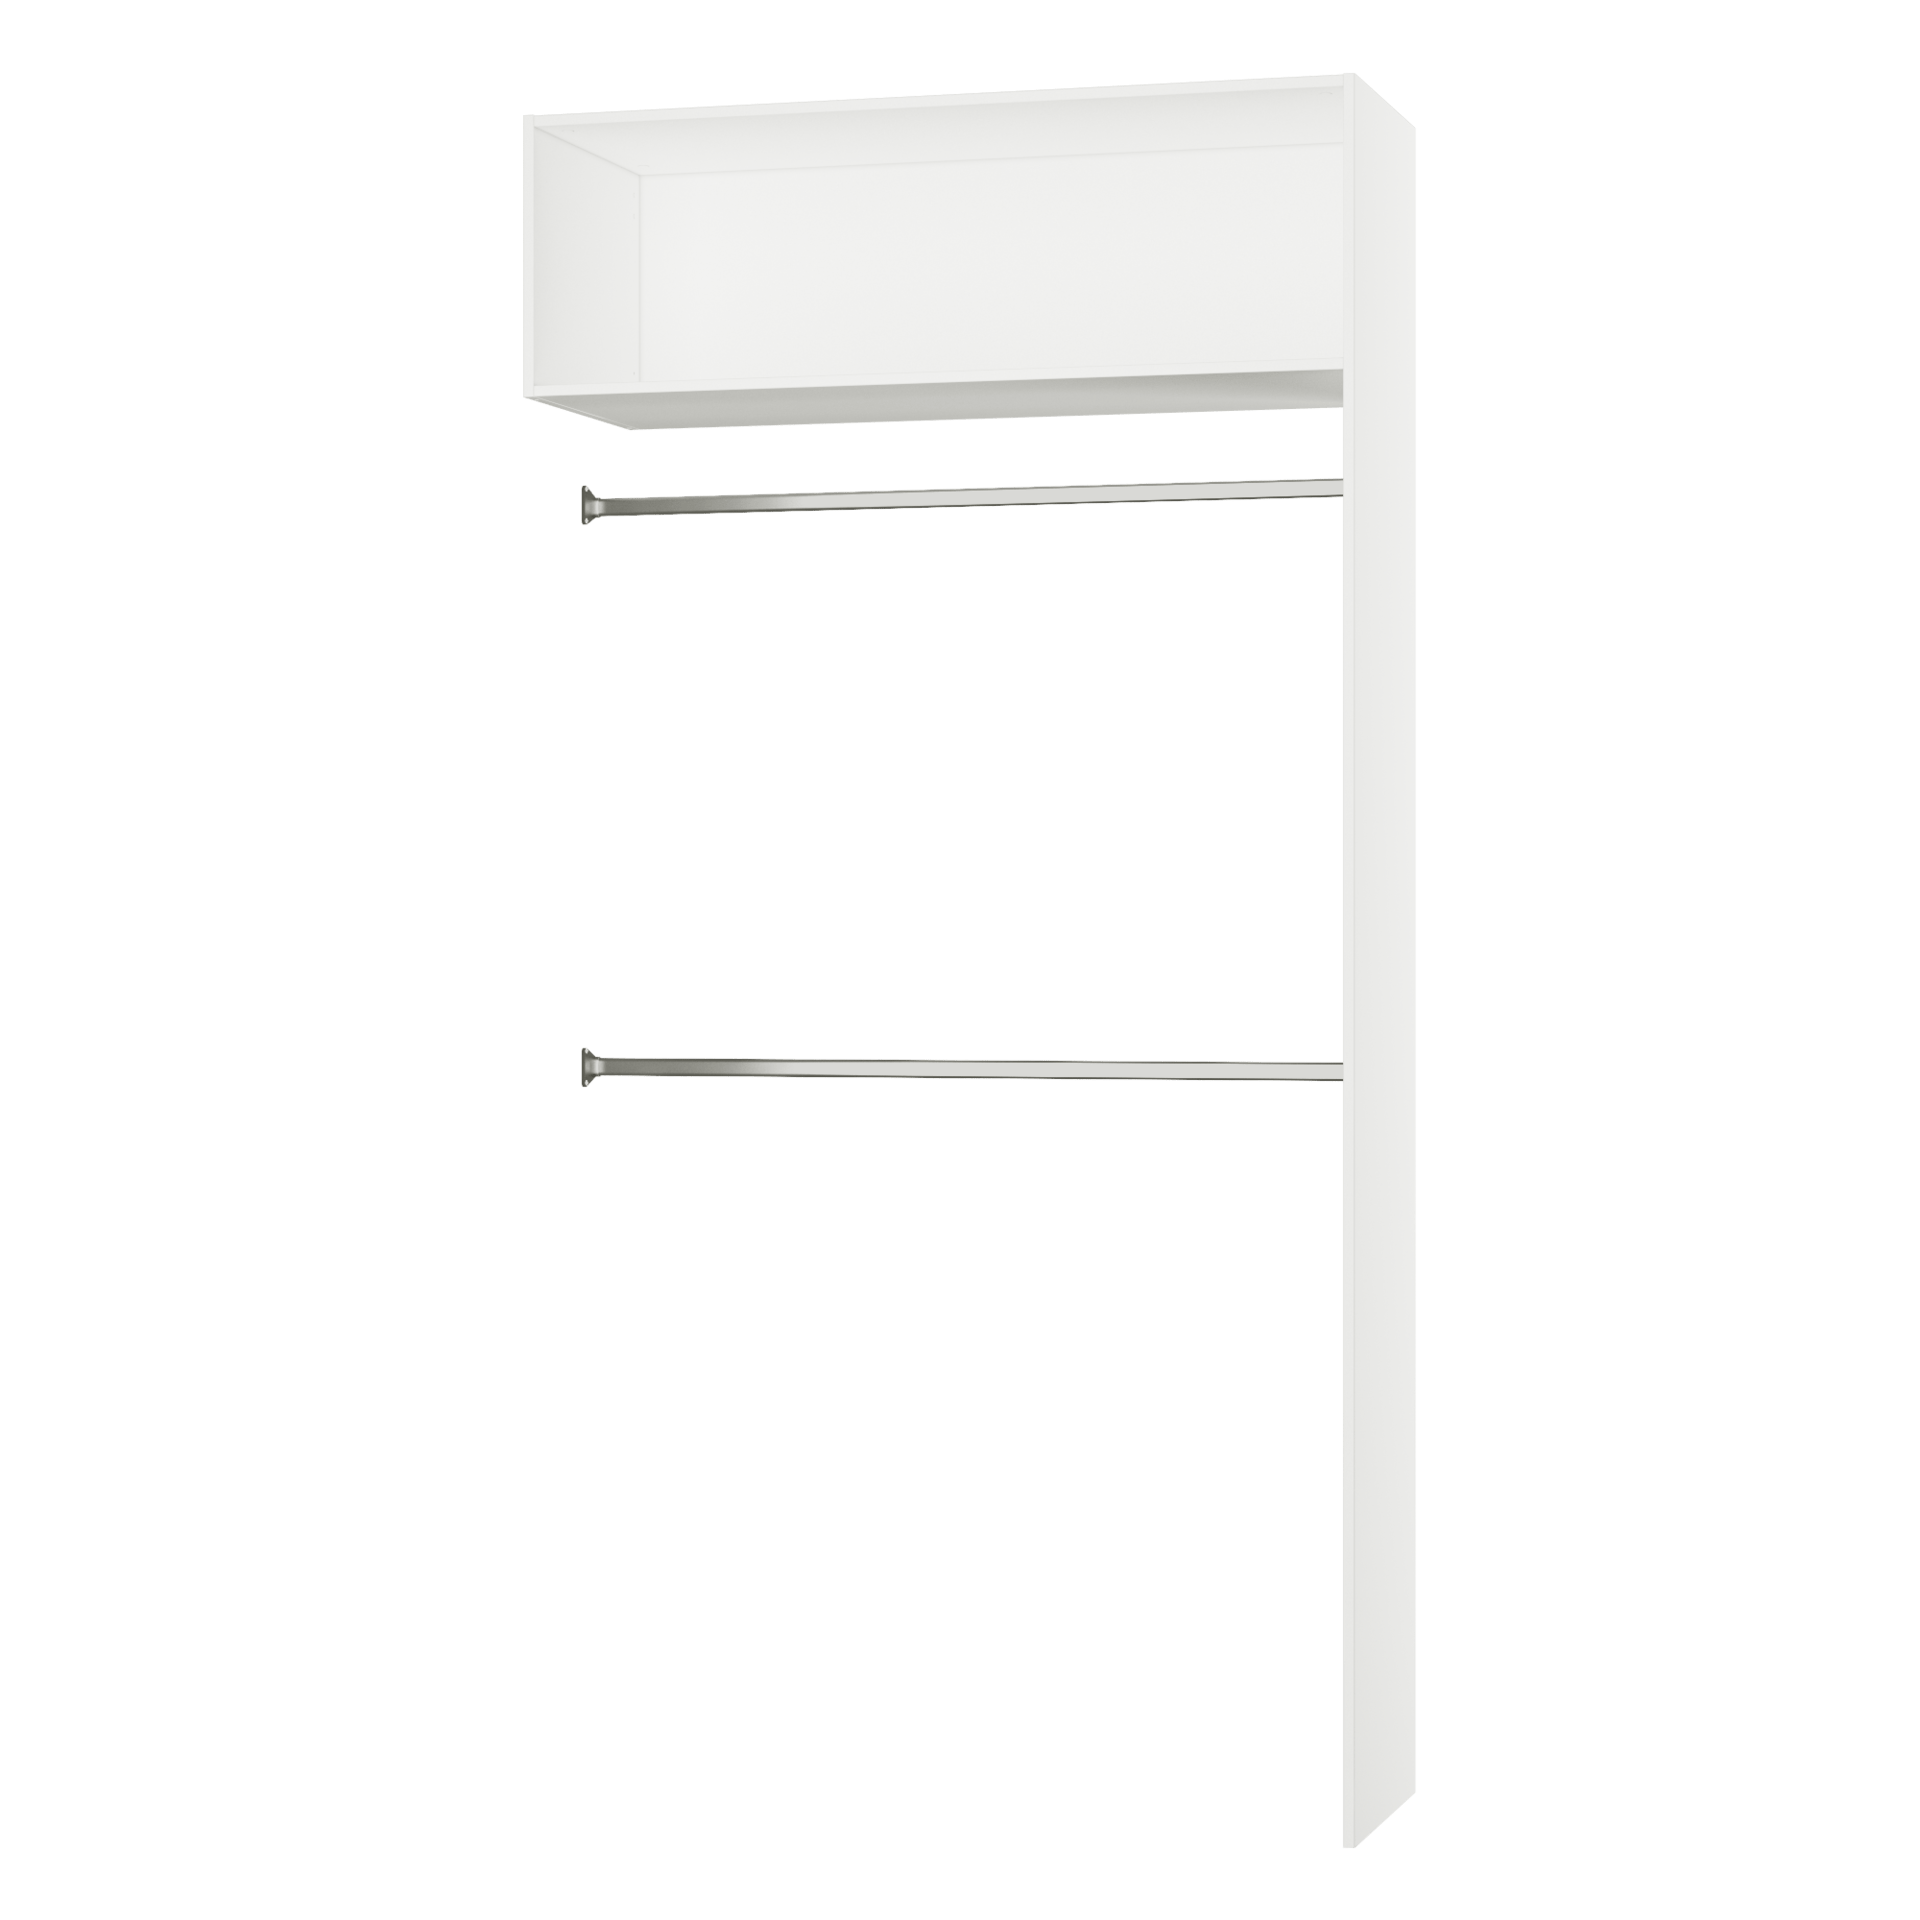 Penderie Extensible Spaceo Home Blanc H 240 X L 120 X P 45 Cm Leroy Merlin